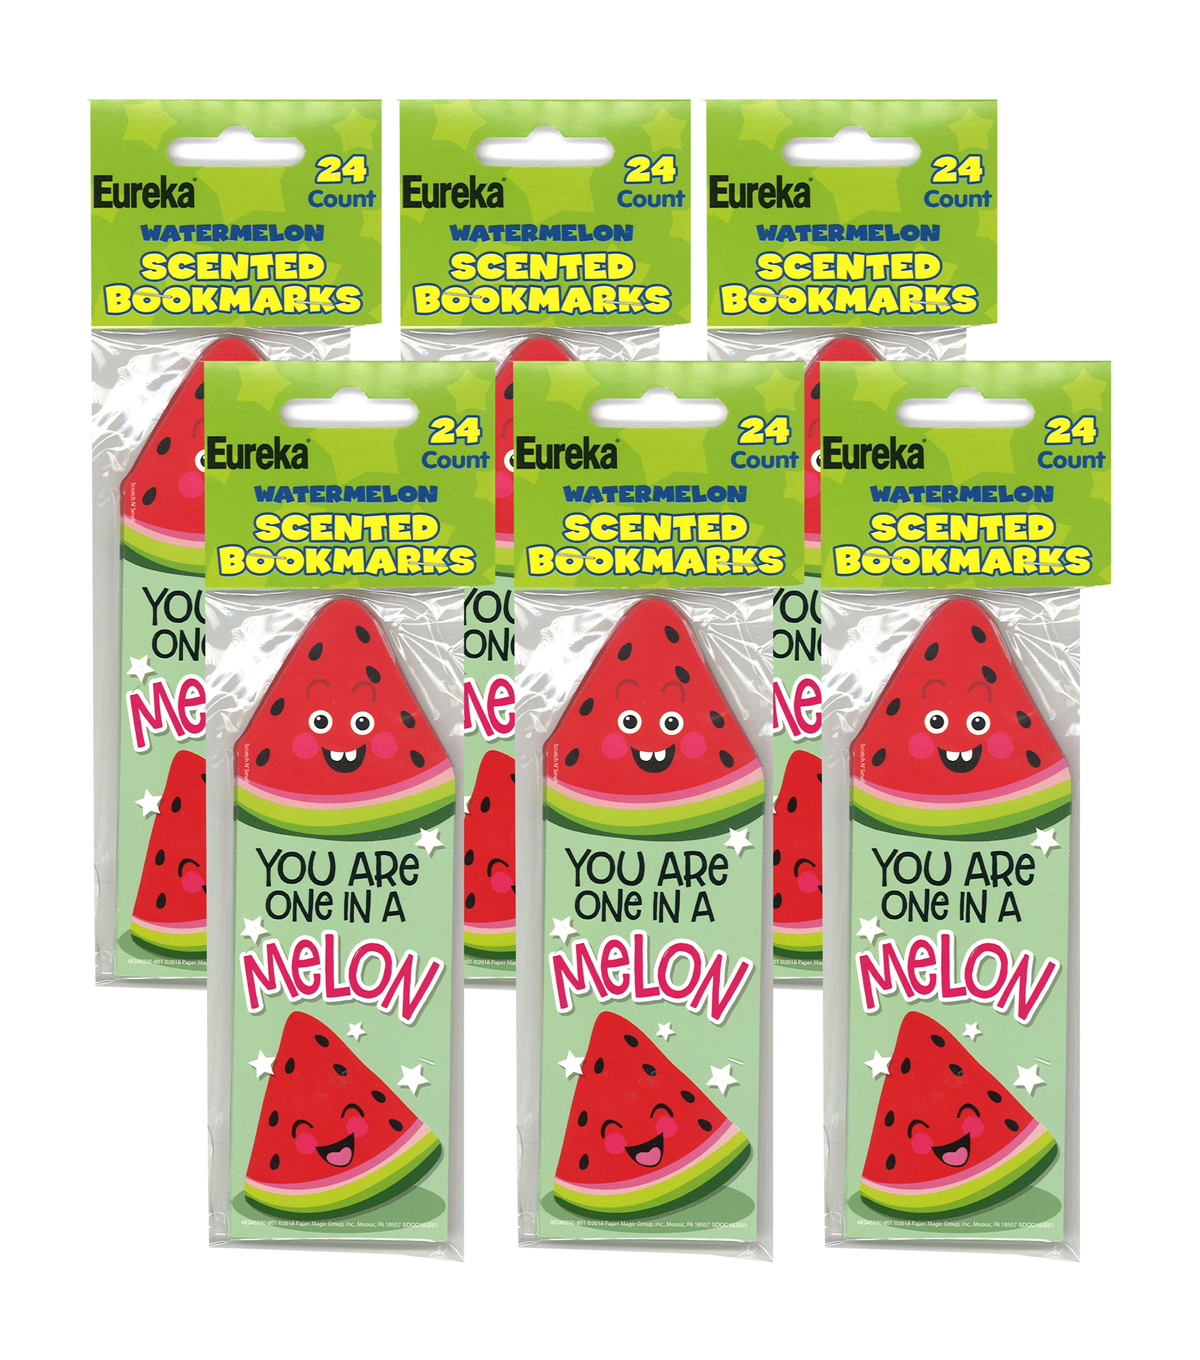 Watermelon Scented Bookmarks, 24 Per Pack, 6 Packs